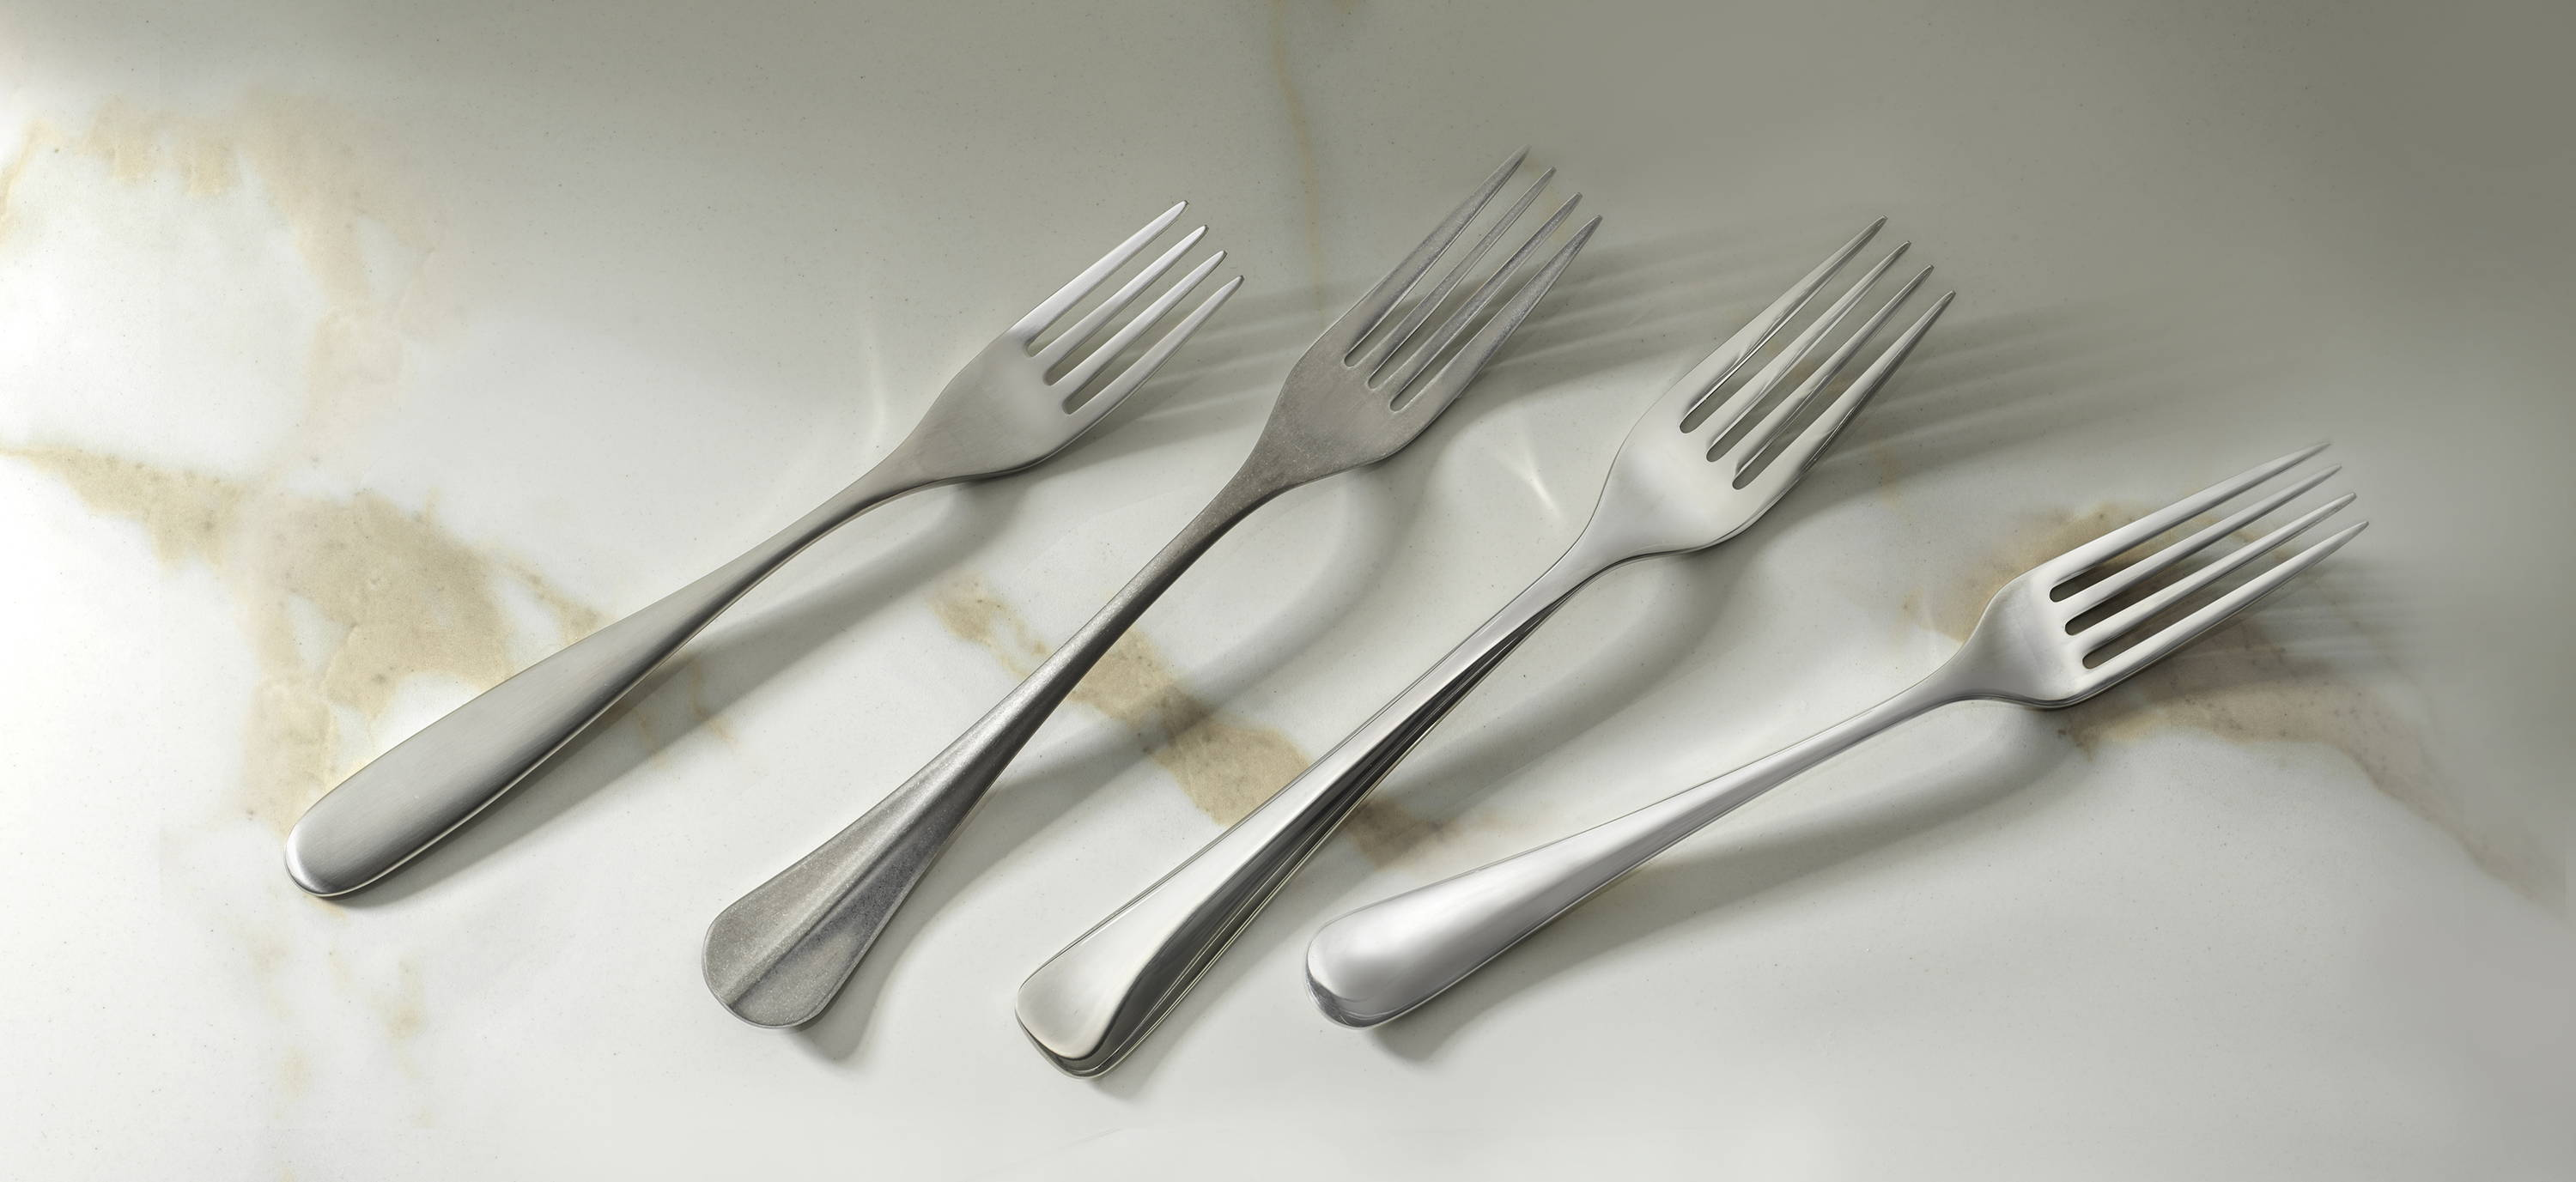 Robert Welch Cutlery Finishes